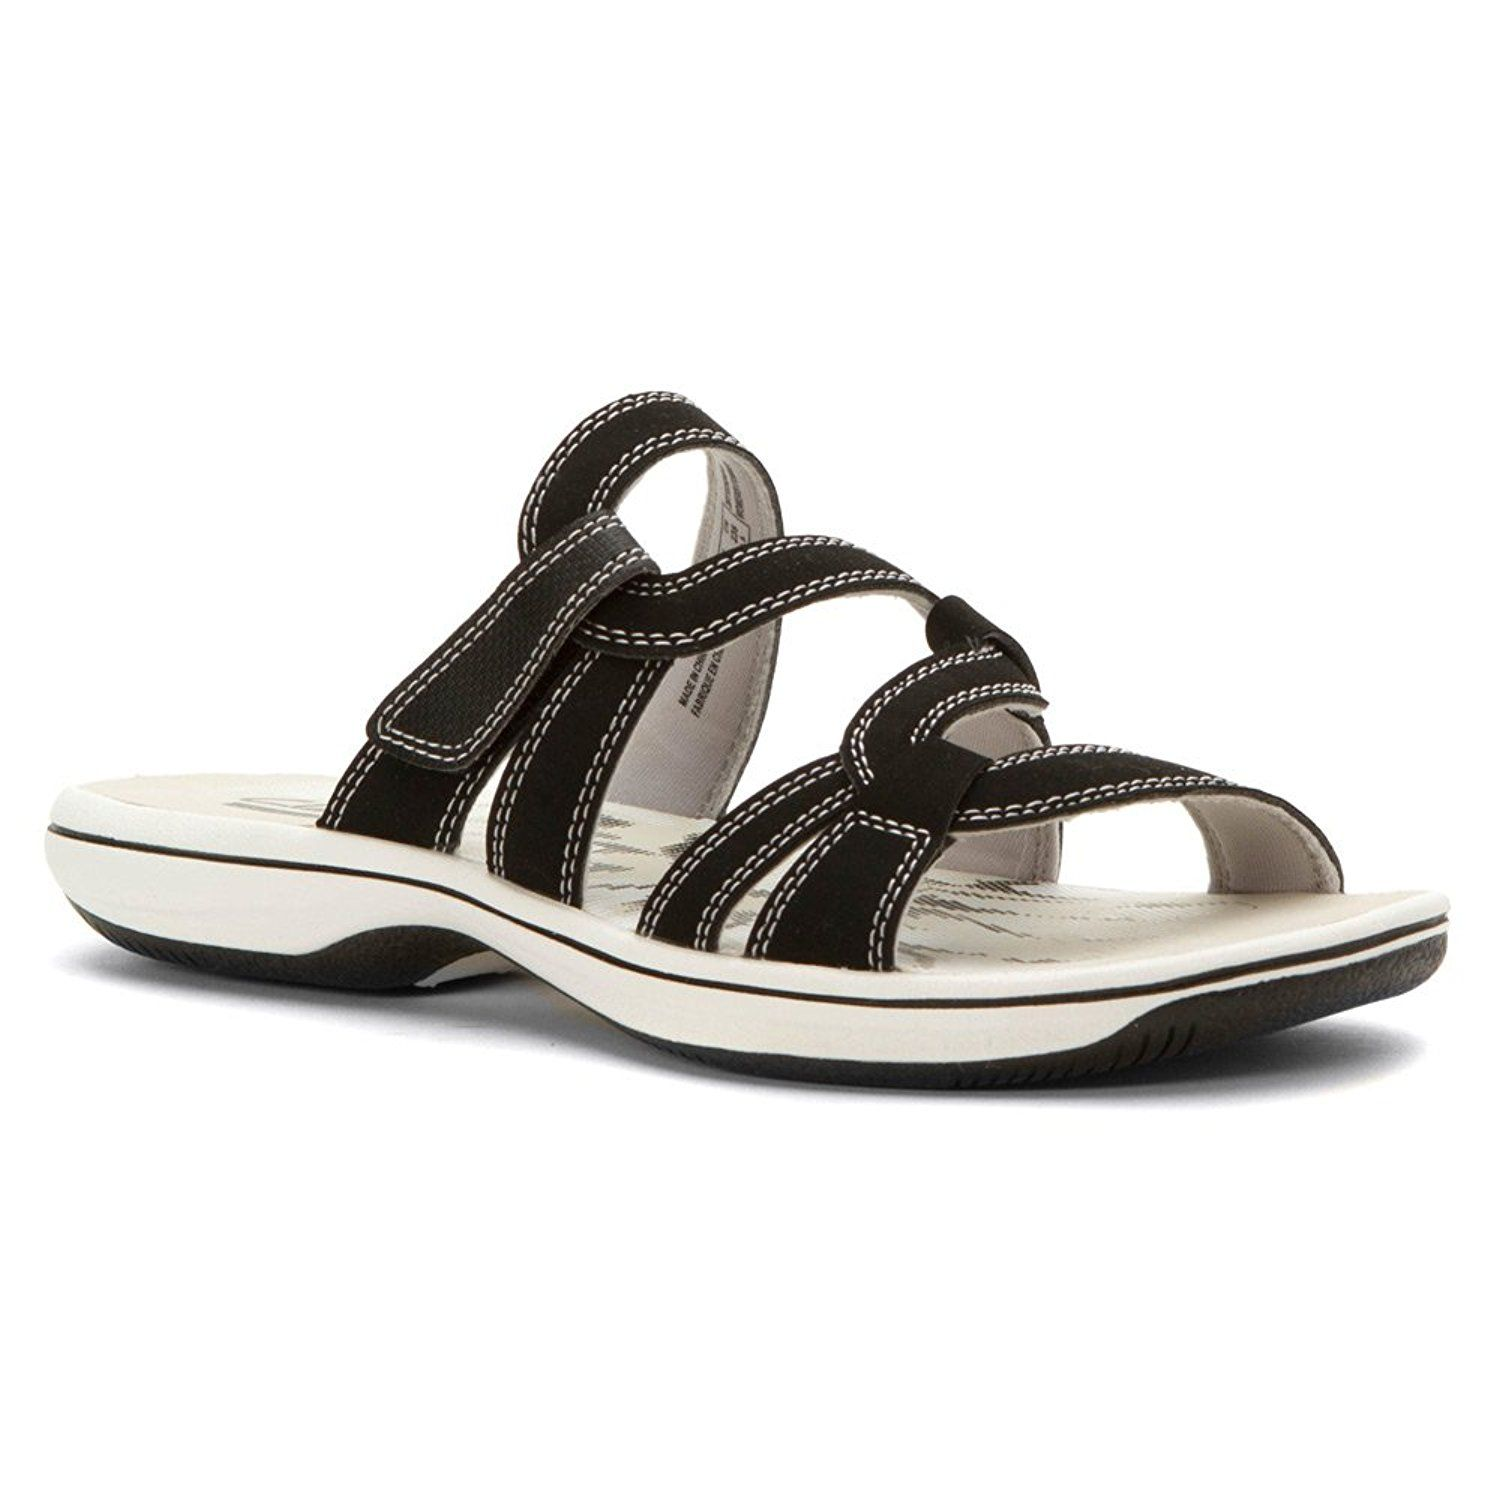 Clarks Women's Brinkley Lonna Hanging Sandals >>> Discover this special  product, click the image : Clarks sandals